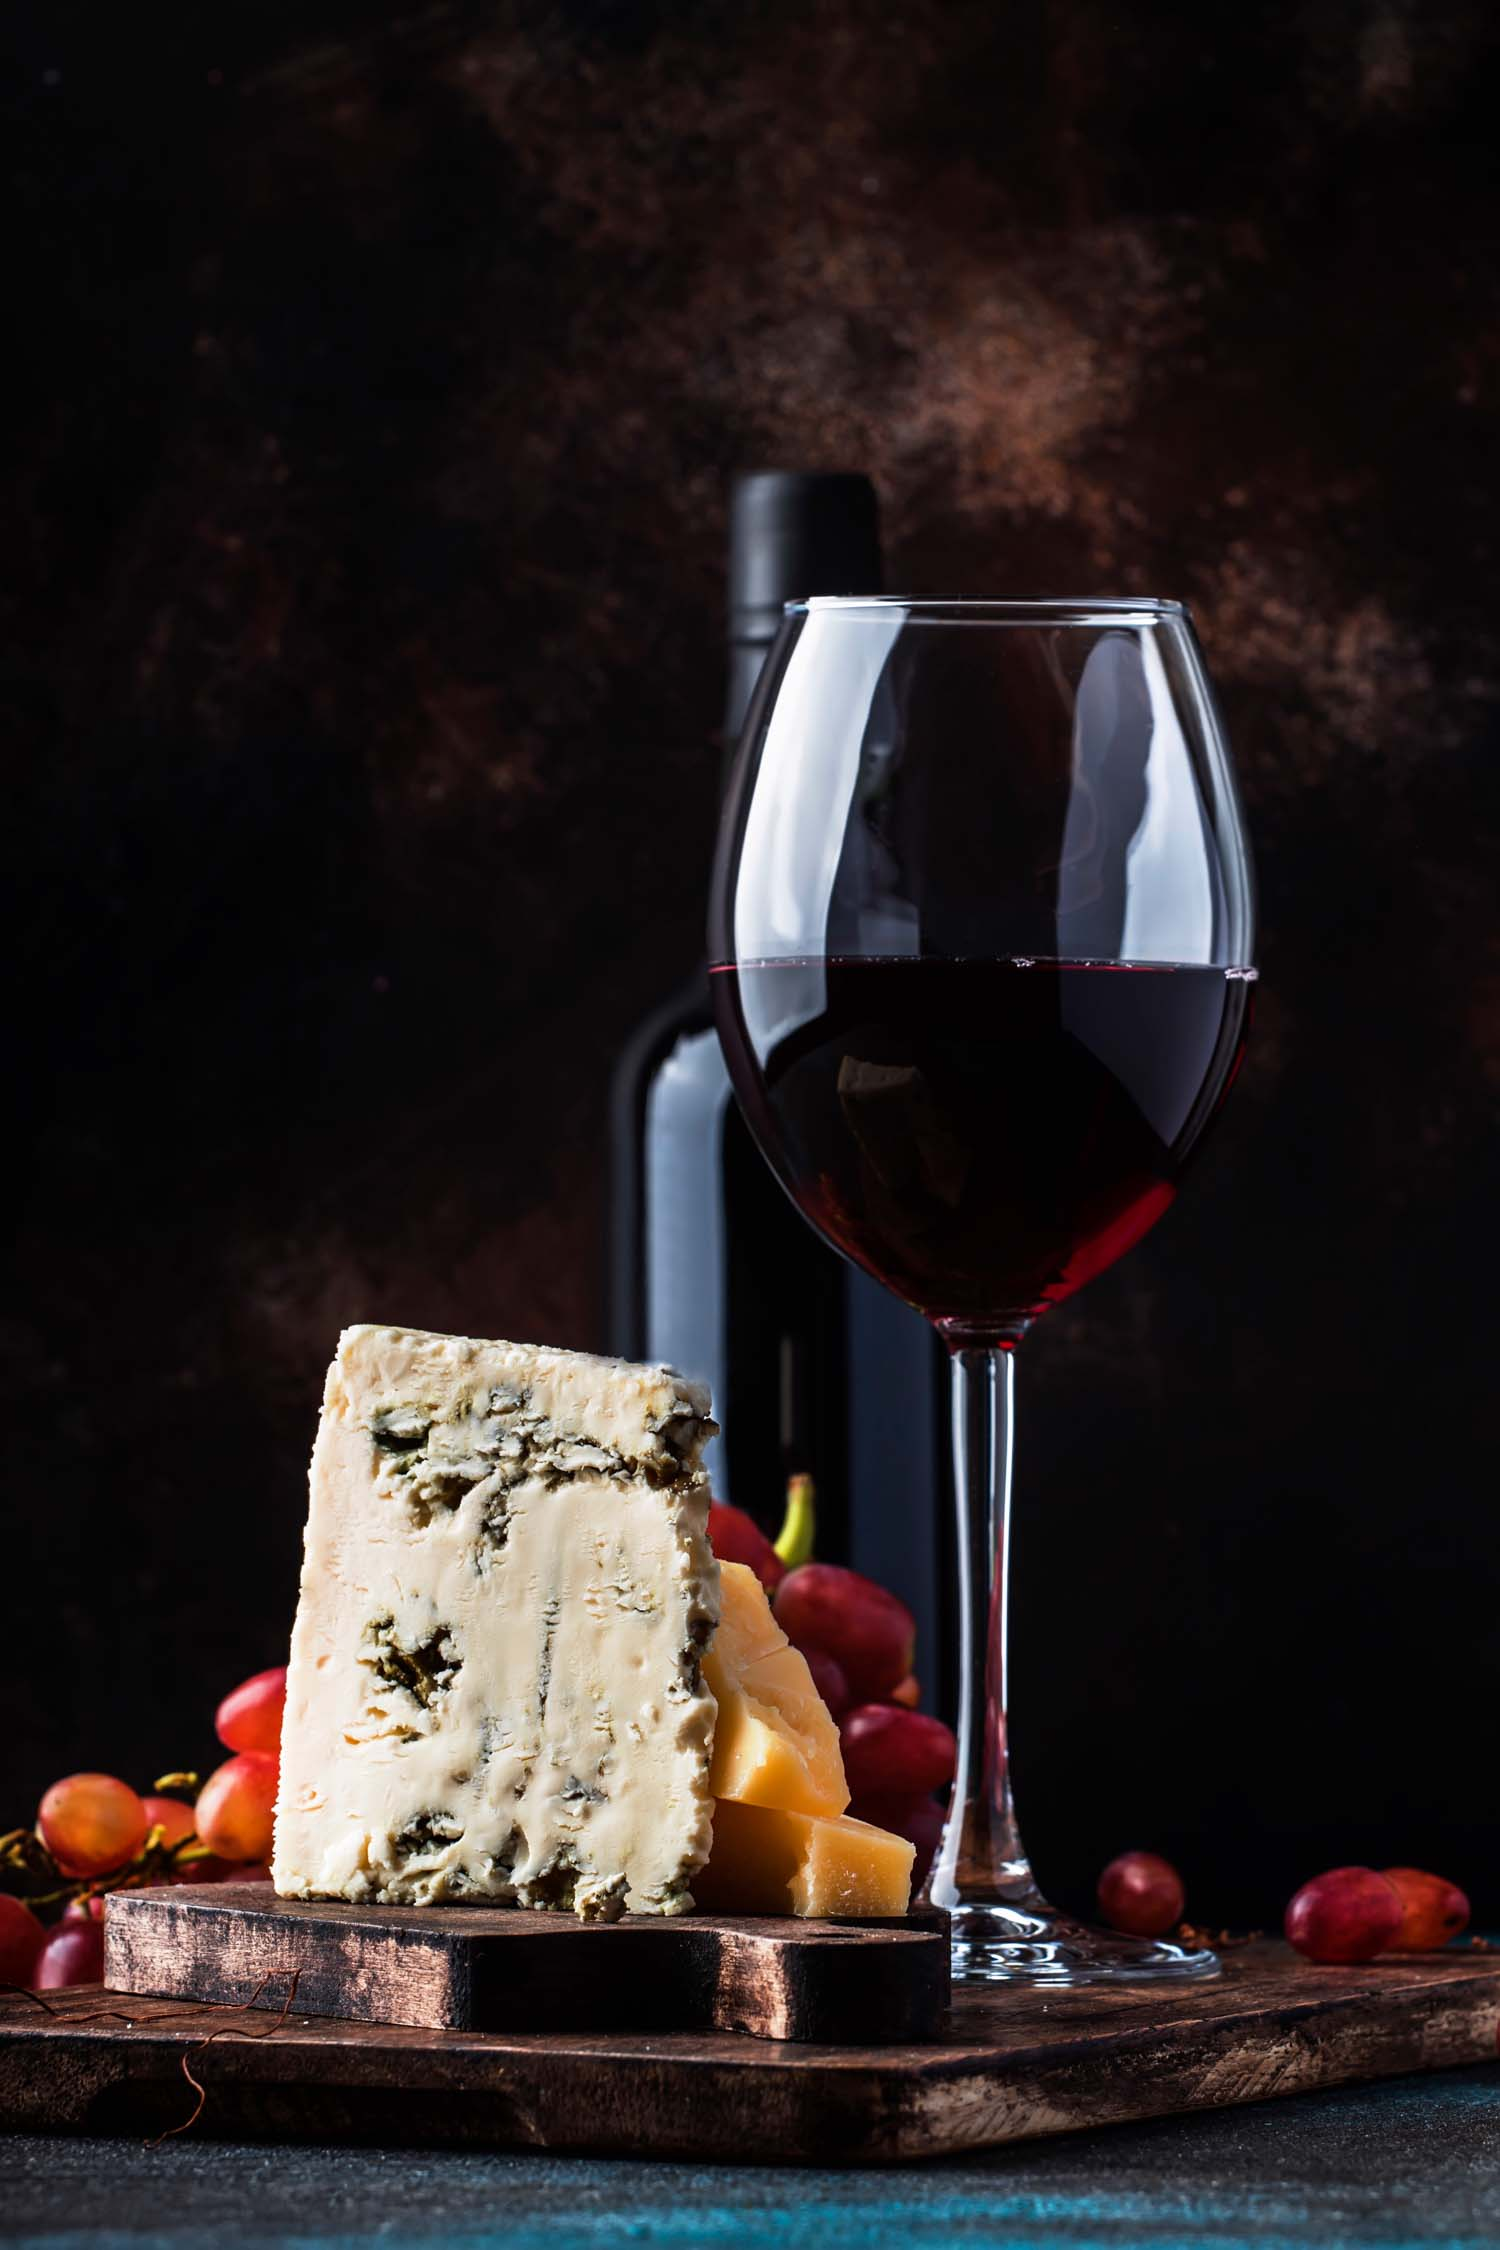 glass of port wine next to cheese fruit and nuts